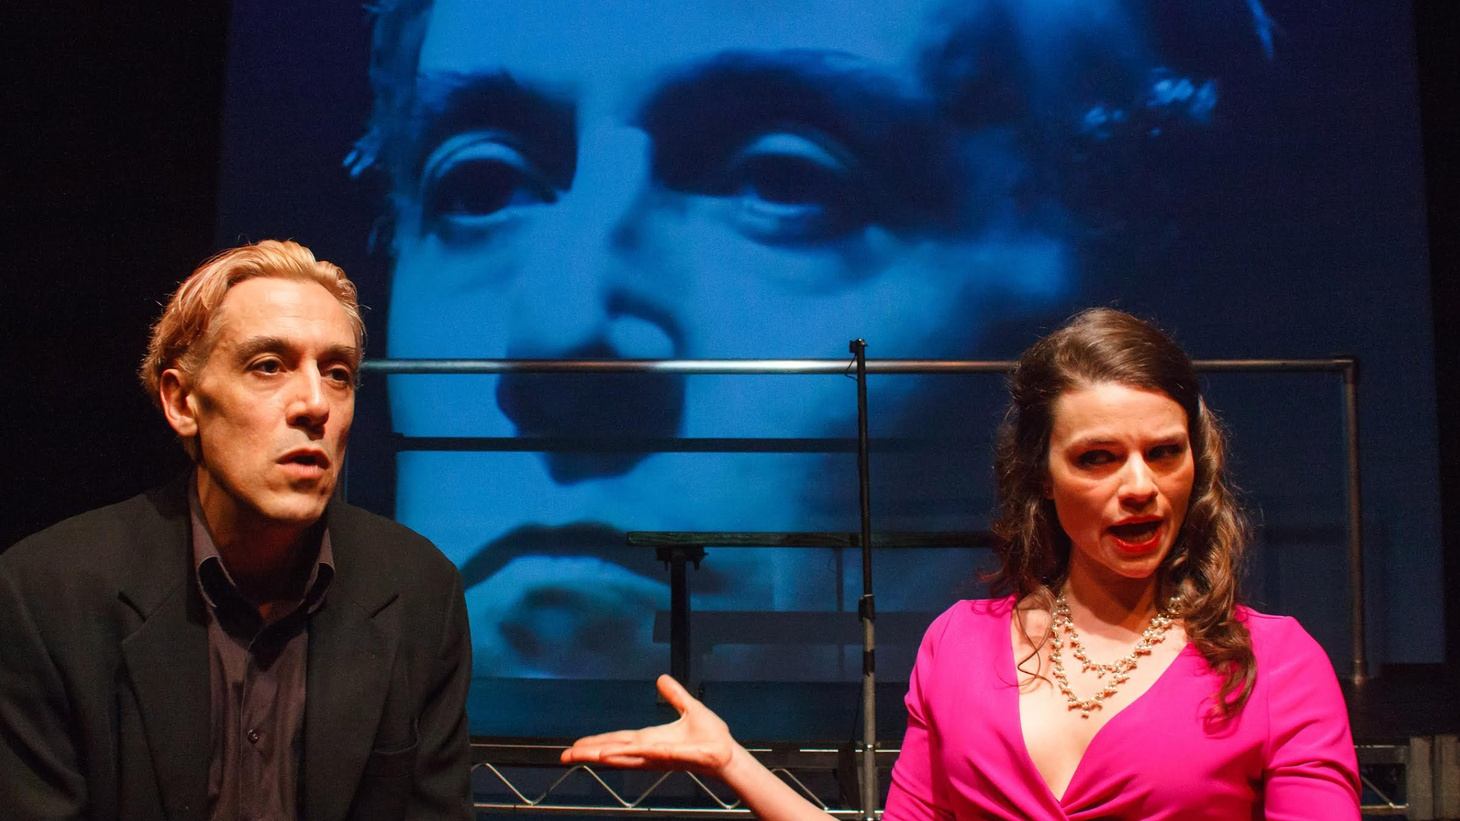 Playwright Neil LaBute likes to get under your skin. Love him or hate him, he's going to push your buttons, challenge your assumptions. City Garage theater is tackling his 2011 playThe Break of Noonand it's no exception.